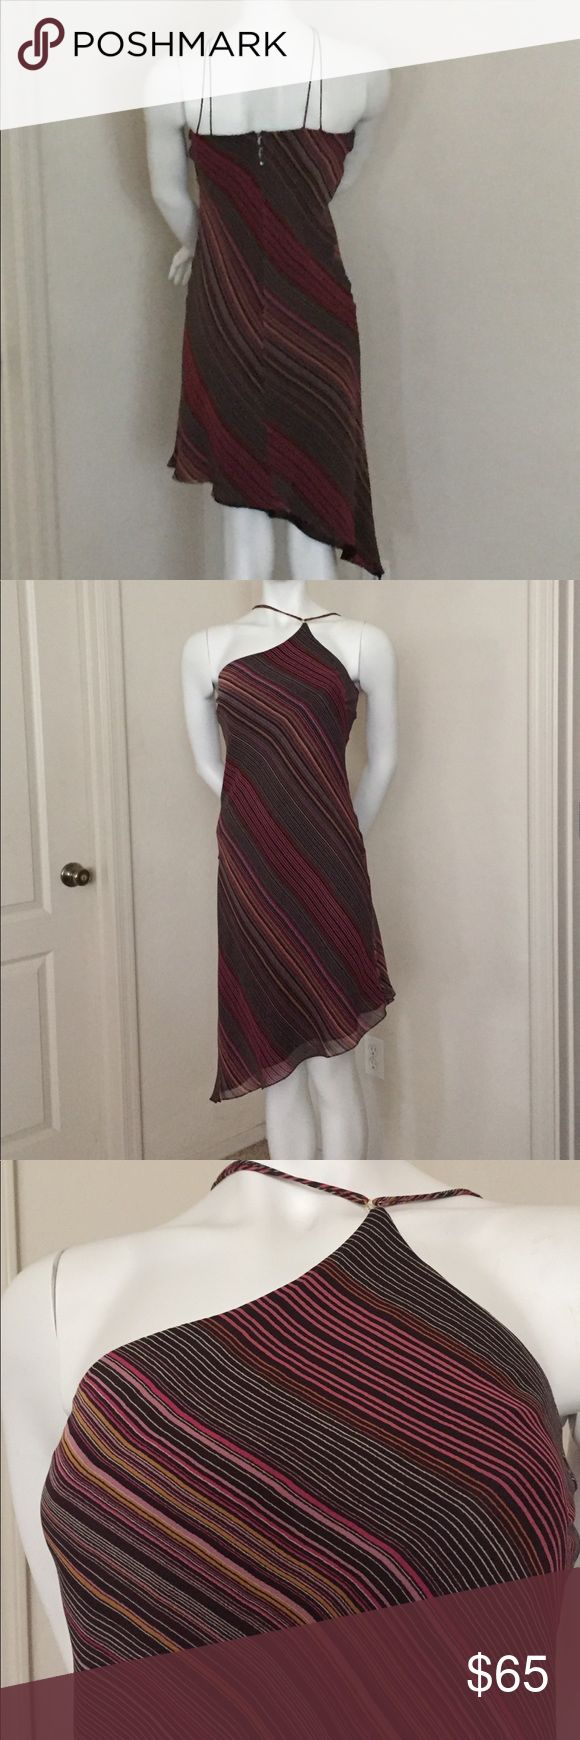 Kay Unger spaghetti strap asymmetrical dress Kay Unger spaghetti strap asymmetrical dress . Fully lined with 3 button back closure. EUC Kay Unger Dresses Asymmetrical